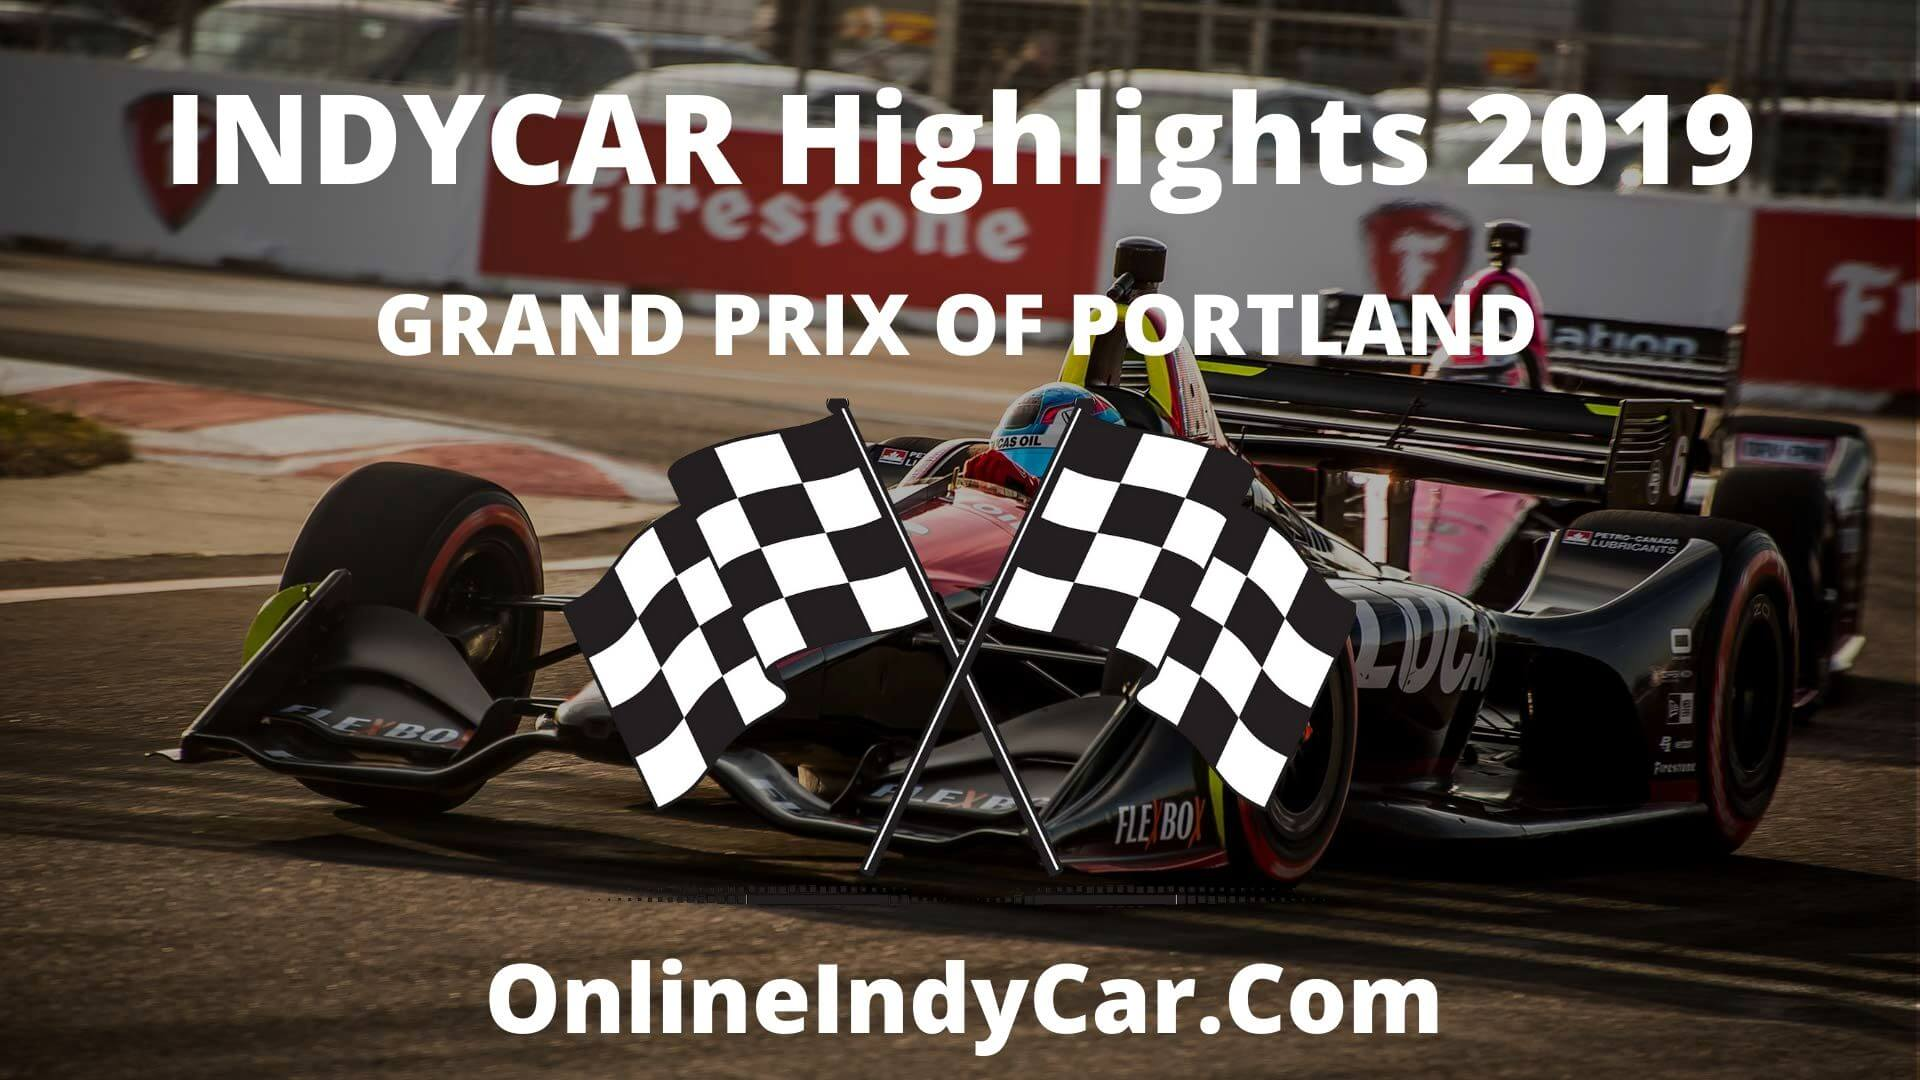 Grand Prix Of Portland Highlights 2019